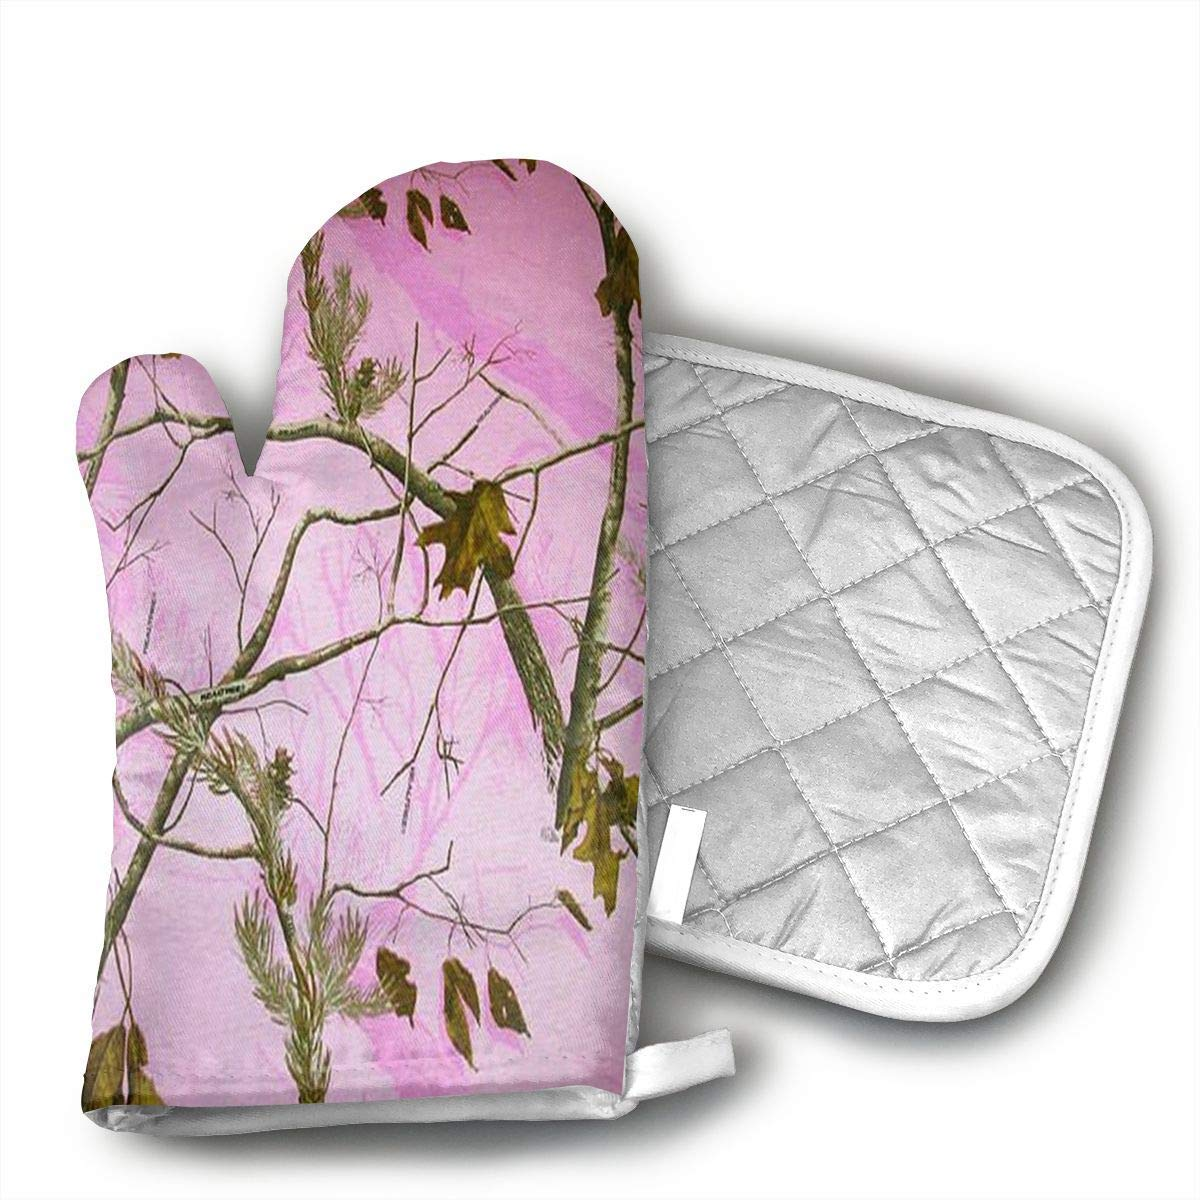 Pink Realtree Camo Oven Mitts and Pot Holders Set with Polyester Cotton Non-Slip Grip, Heat Resistant, Oven Gloves for BBQ Cooking Baking, Grilling